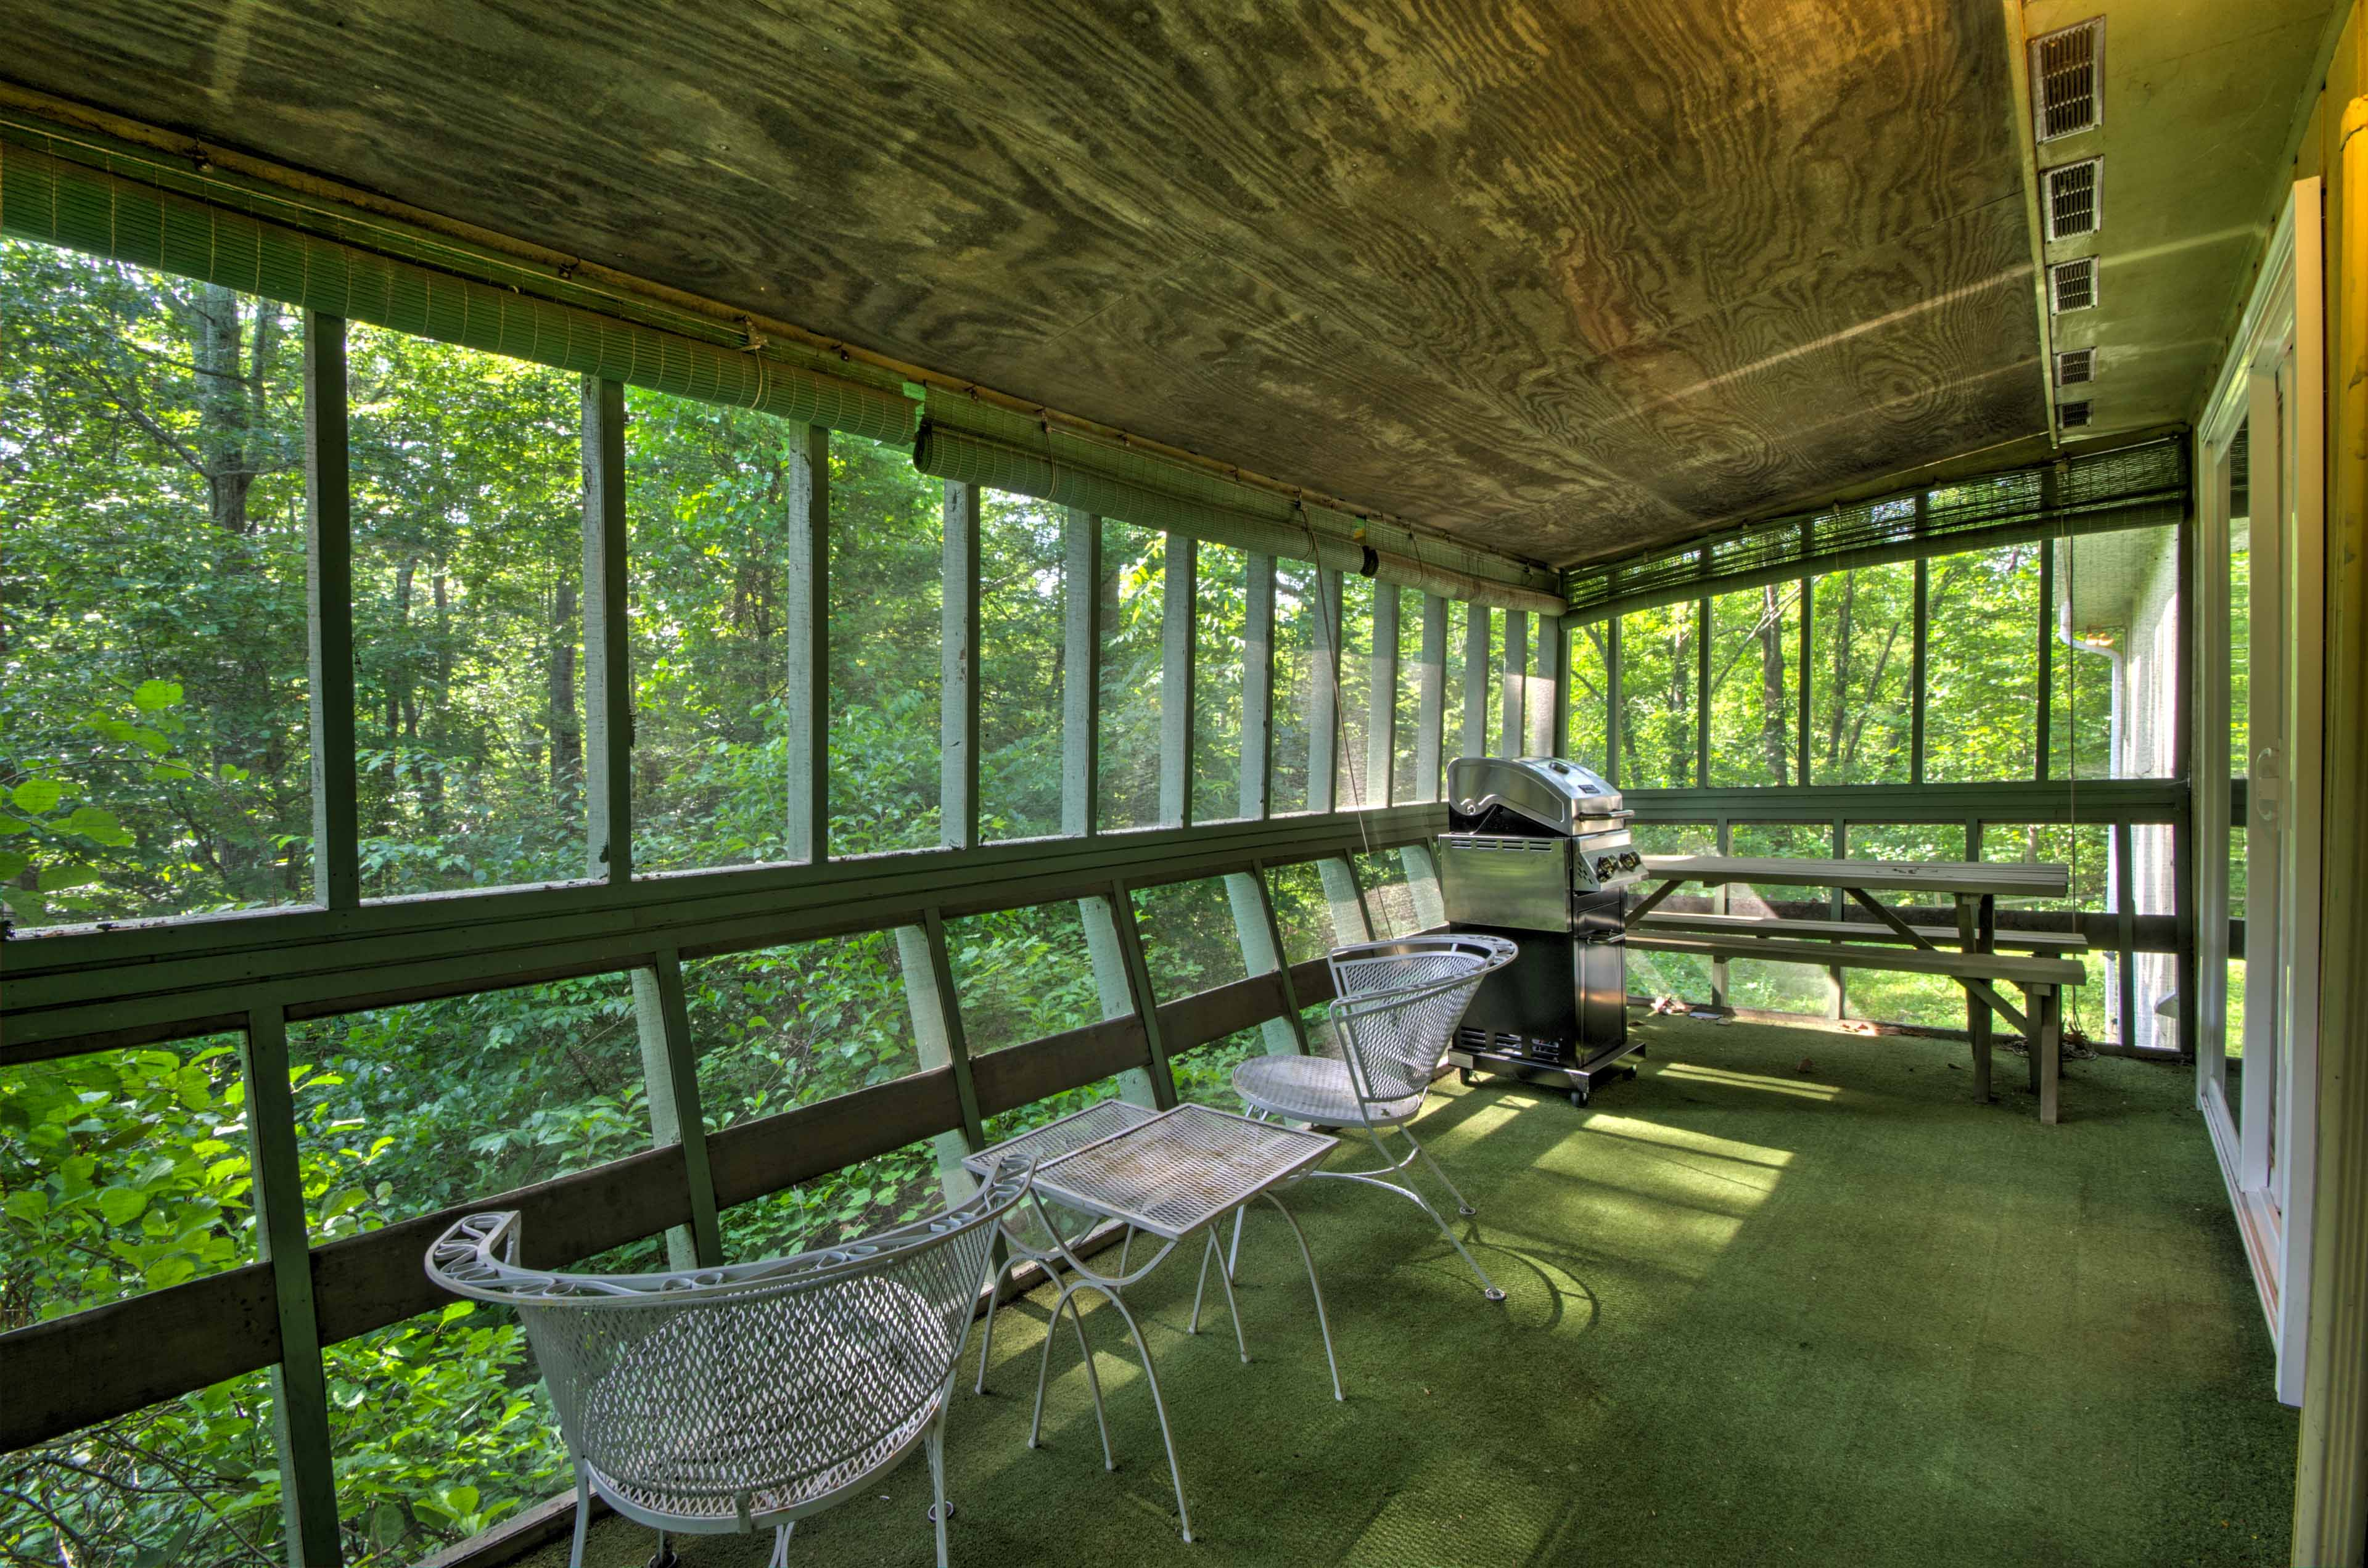 Read a book and relax on the screened-in porch.